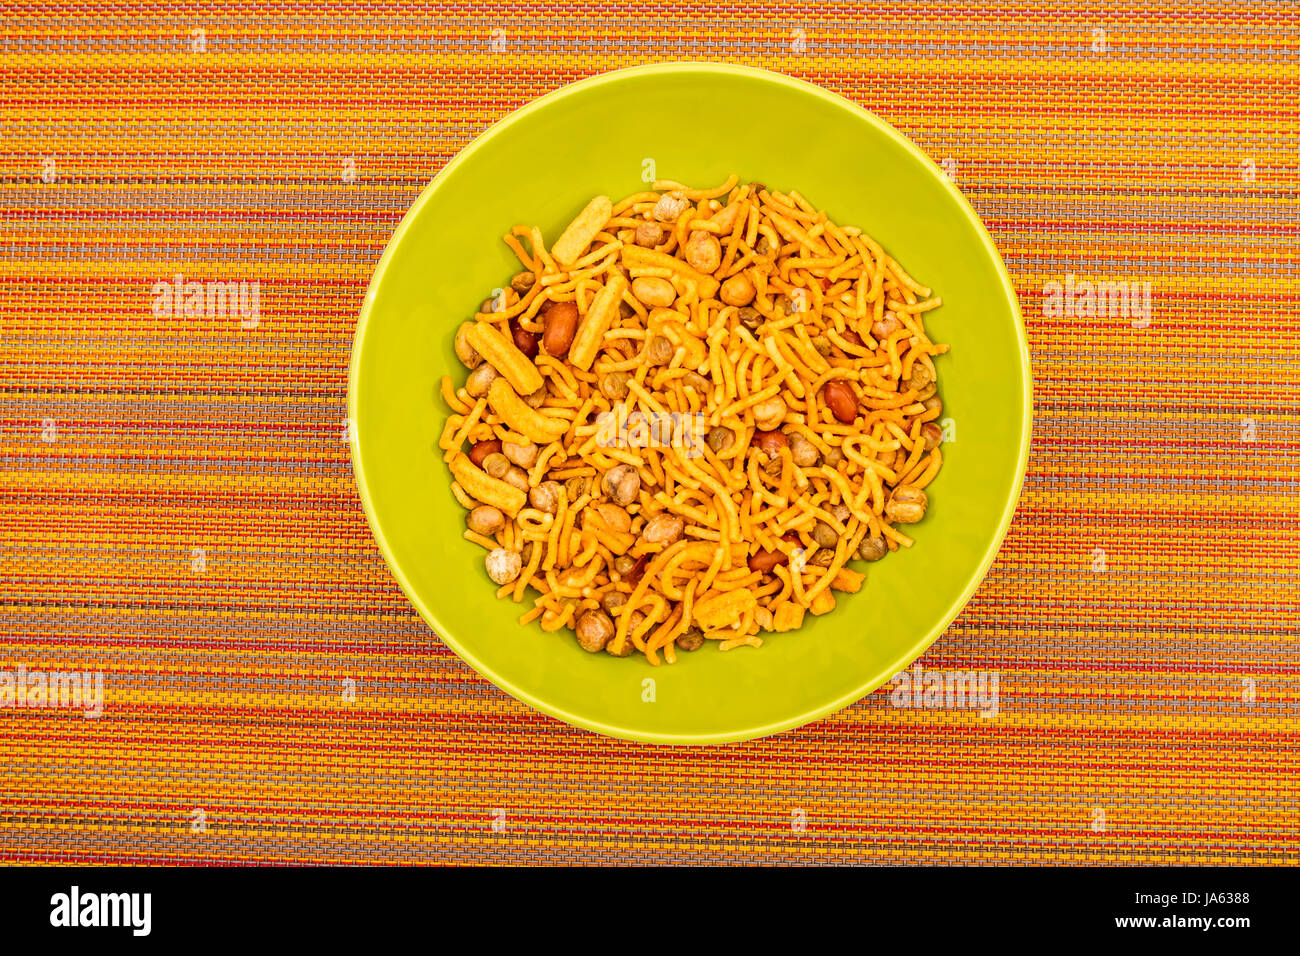 food, aliment, salt, nibble, spice, india, hot, party, celebration, - Stock Image